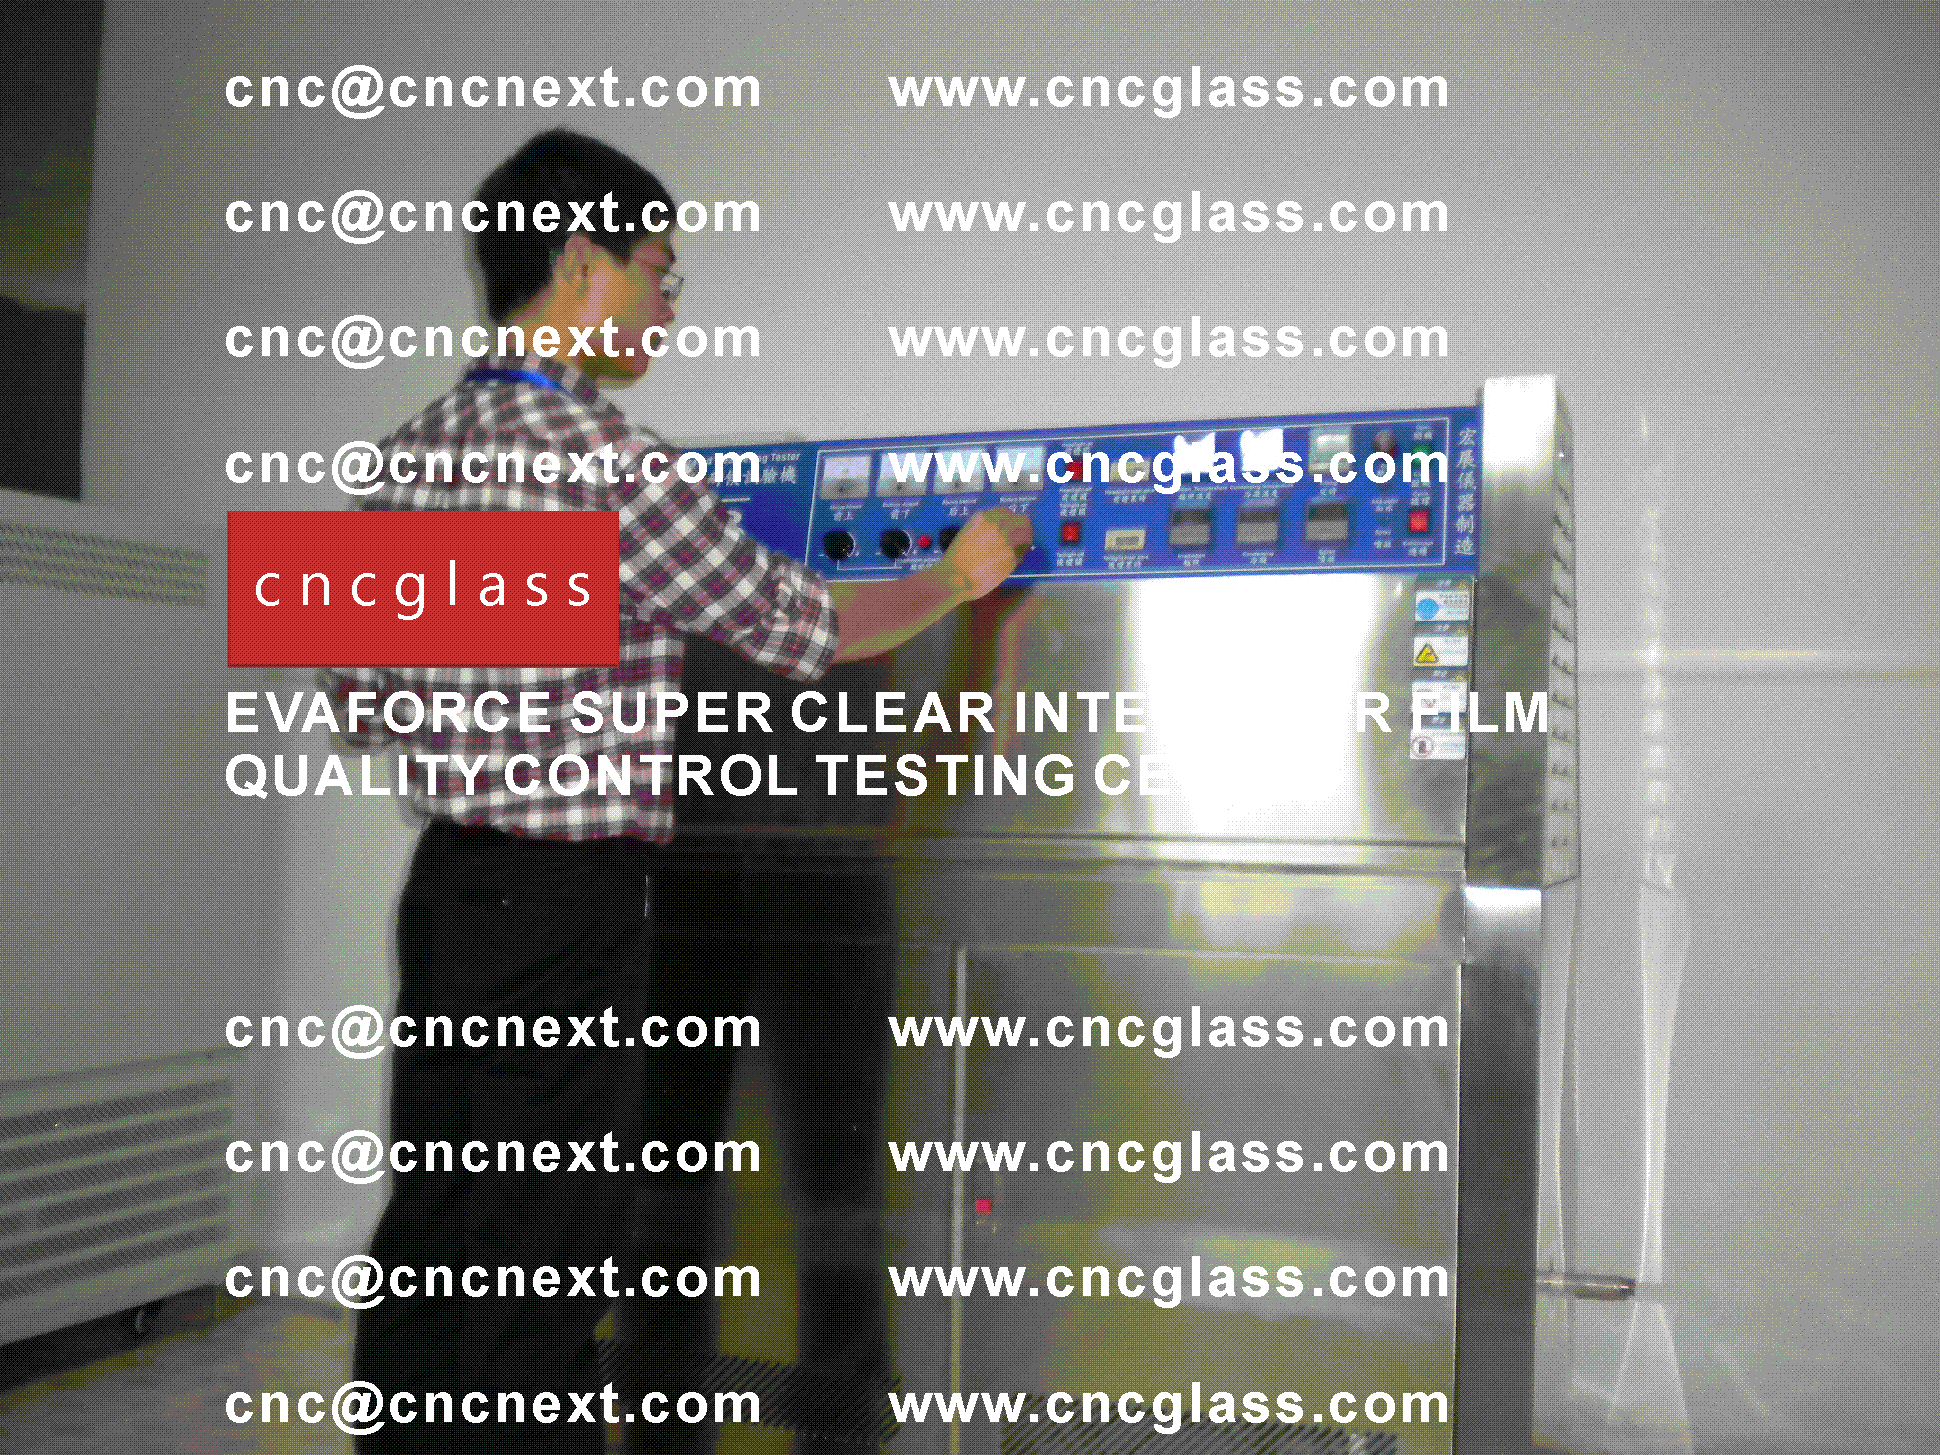 004 Quality Control of EVAFORCE SUPER CLEAR INTERLAYER FILM